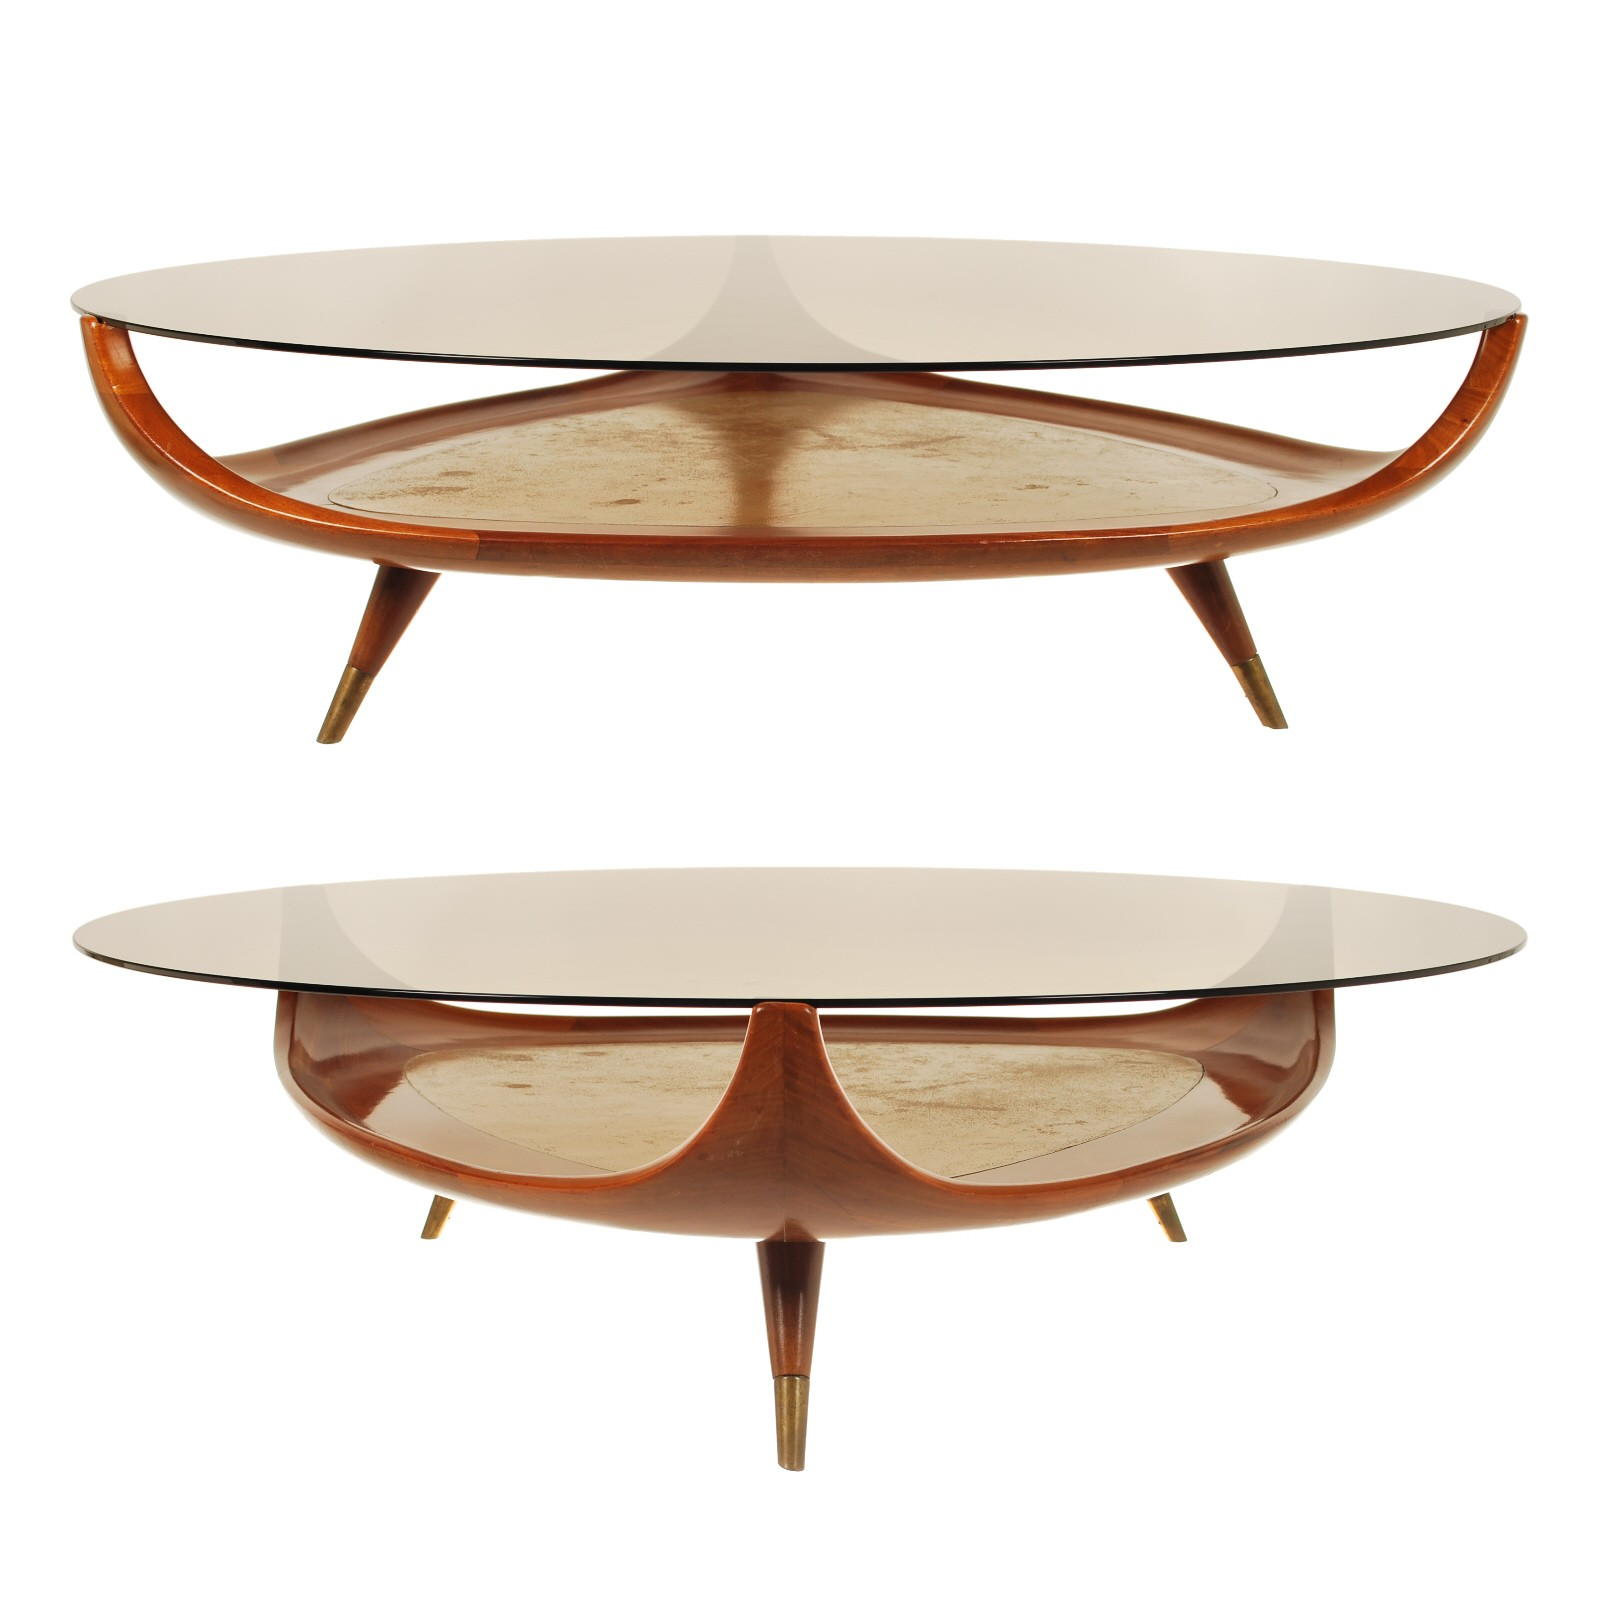 Marvellous oval coffee table for home furniture with oval glass coffee table